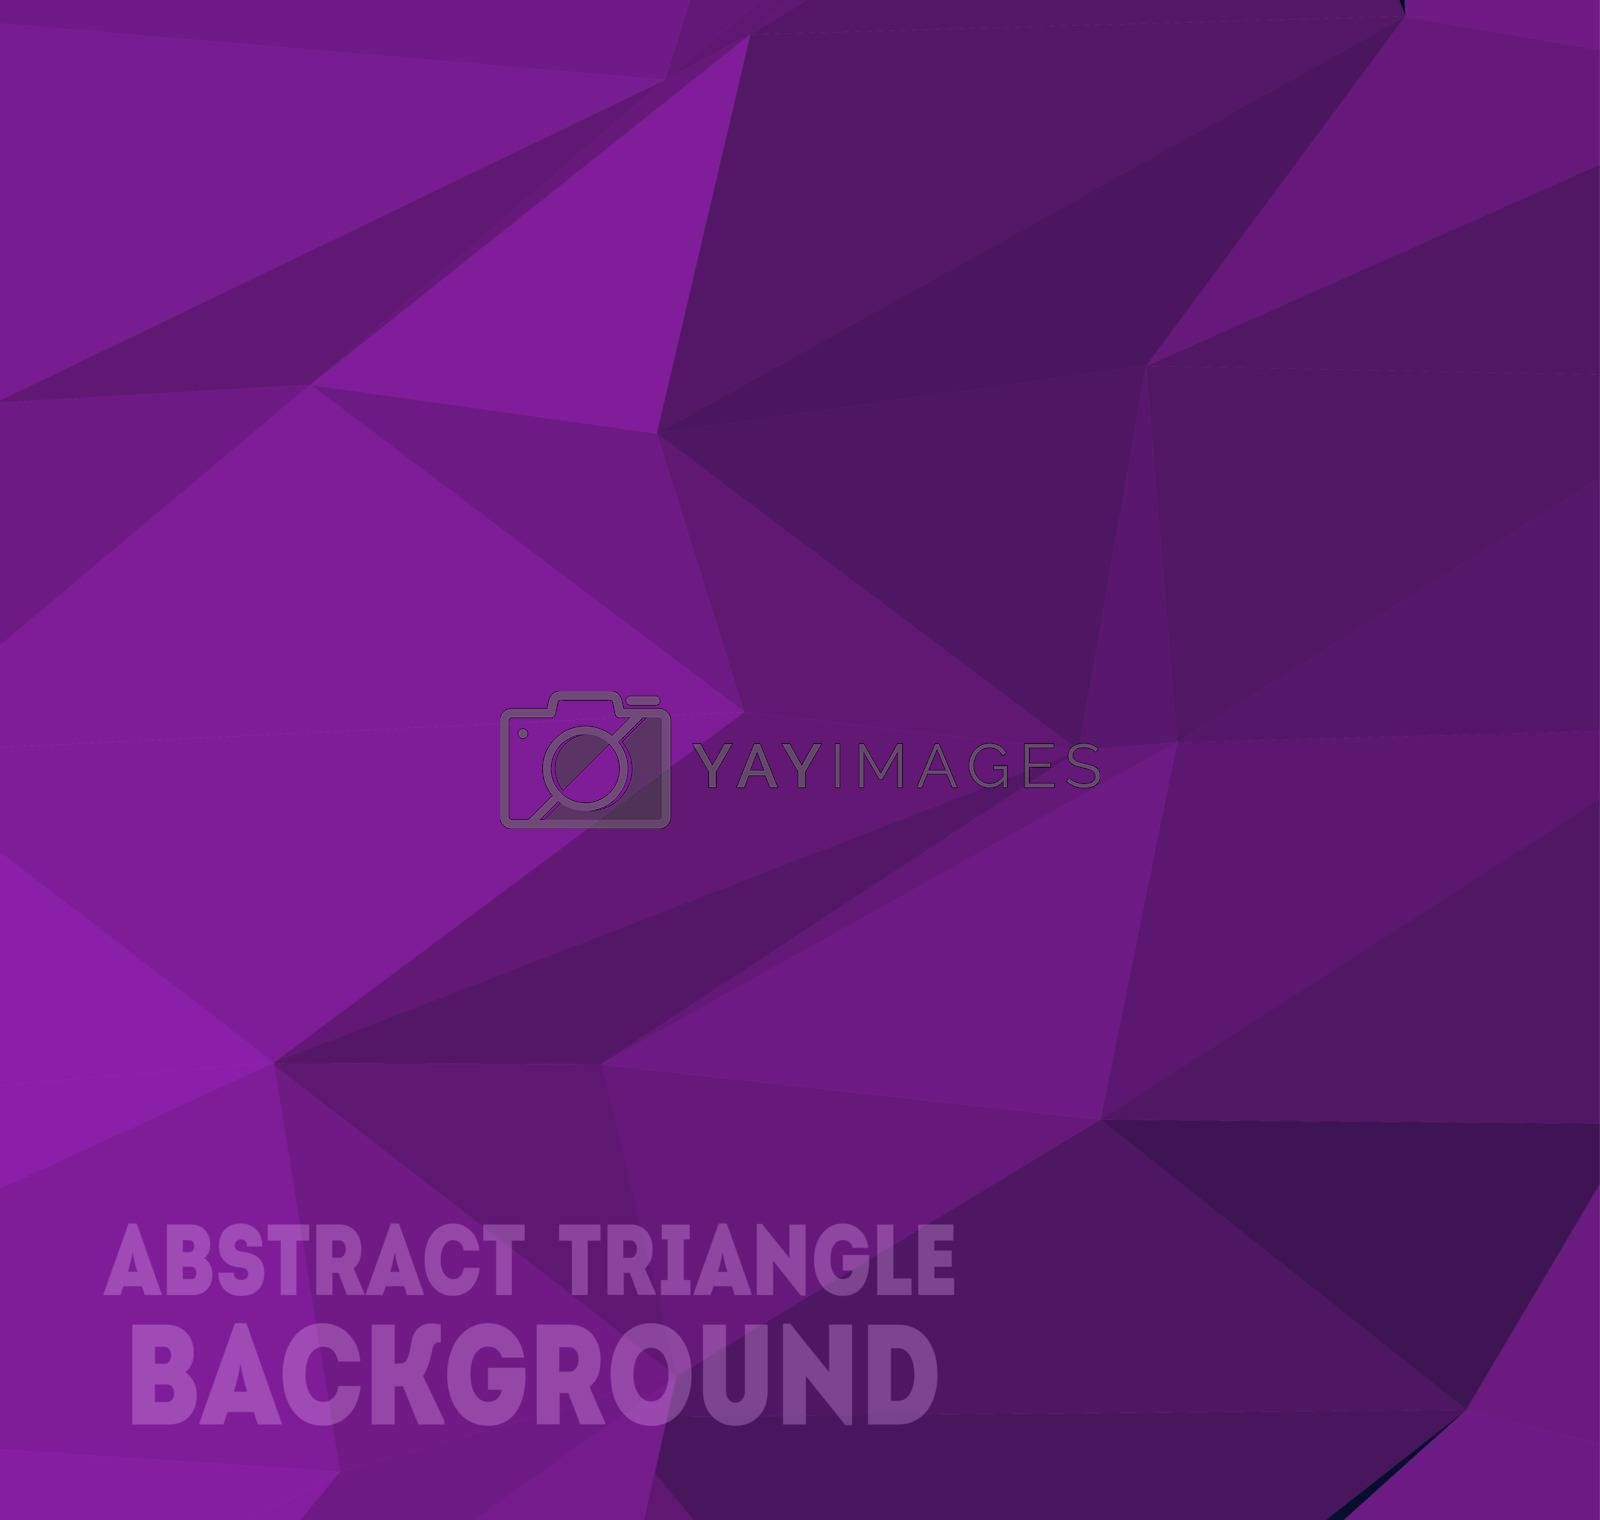 Triangle background pattern of geometric elements